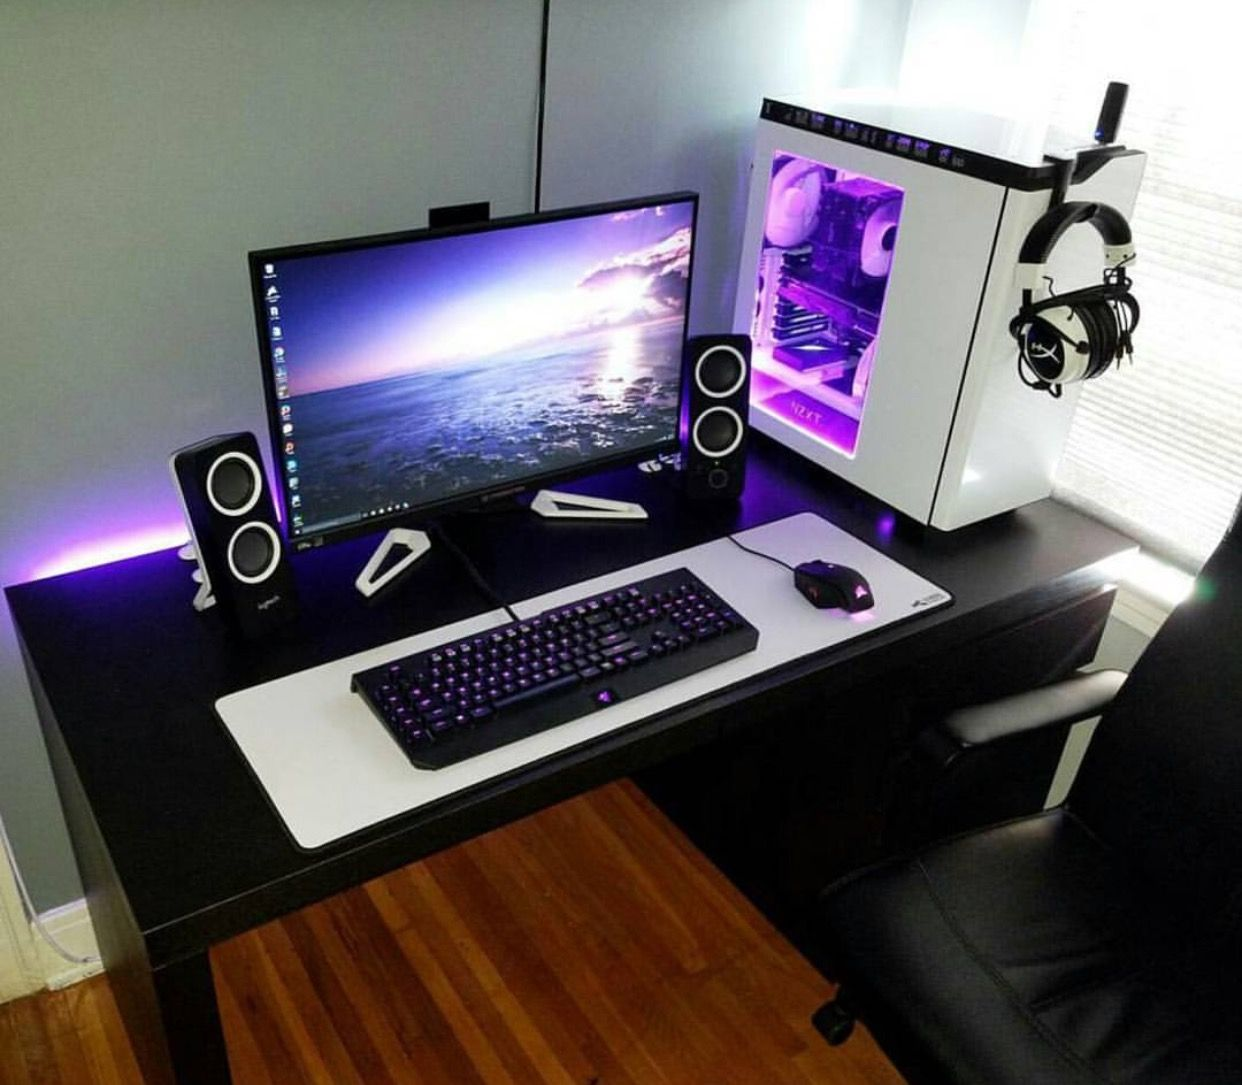 Pc Game Room Ideas: Im Just A Little Too Broke For This